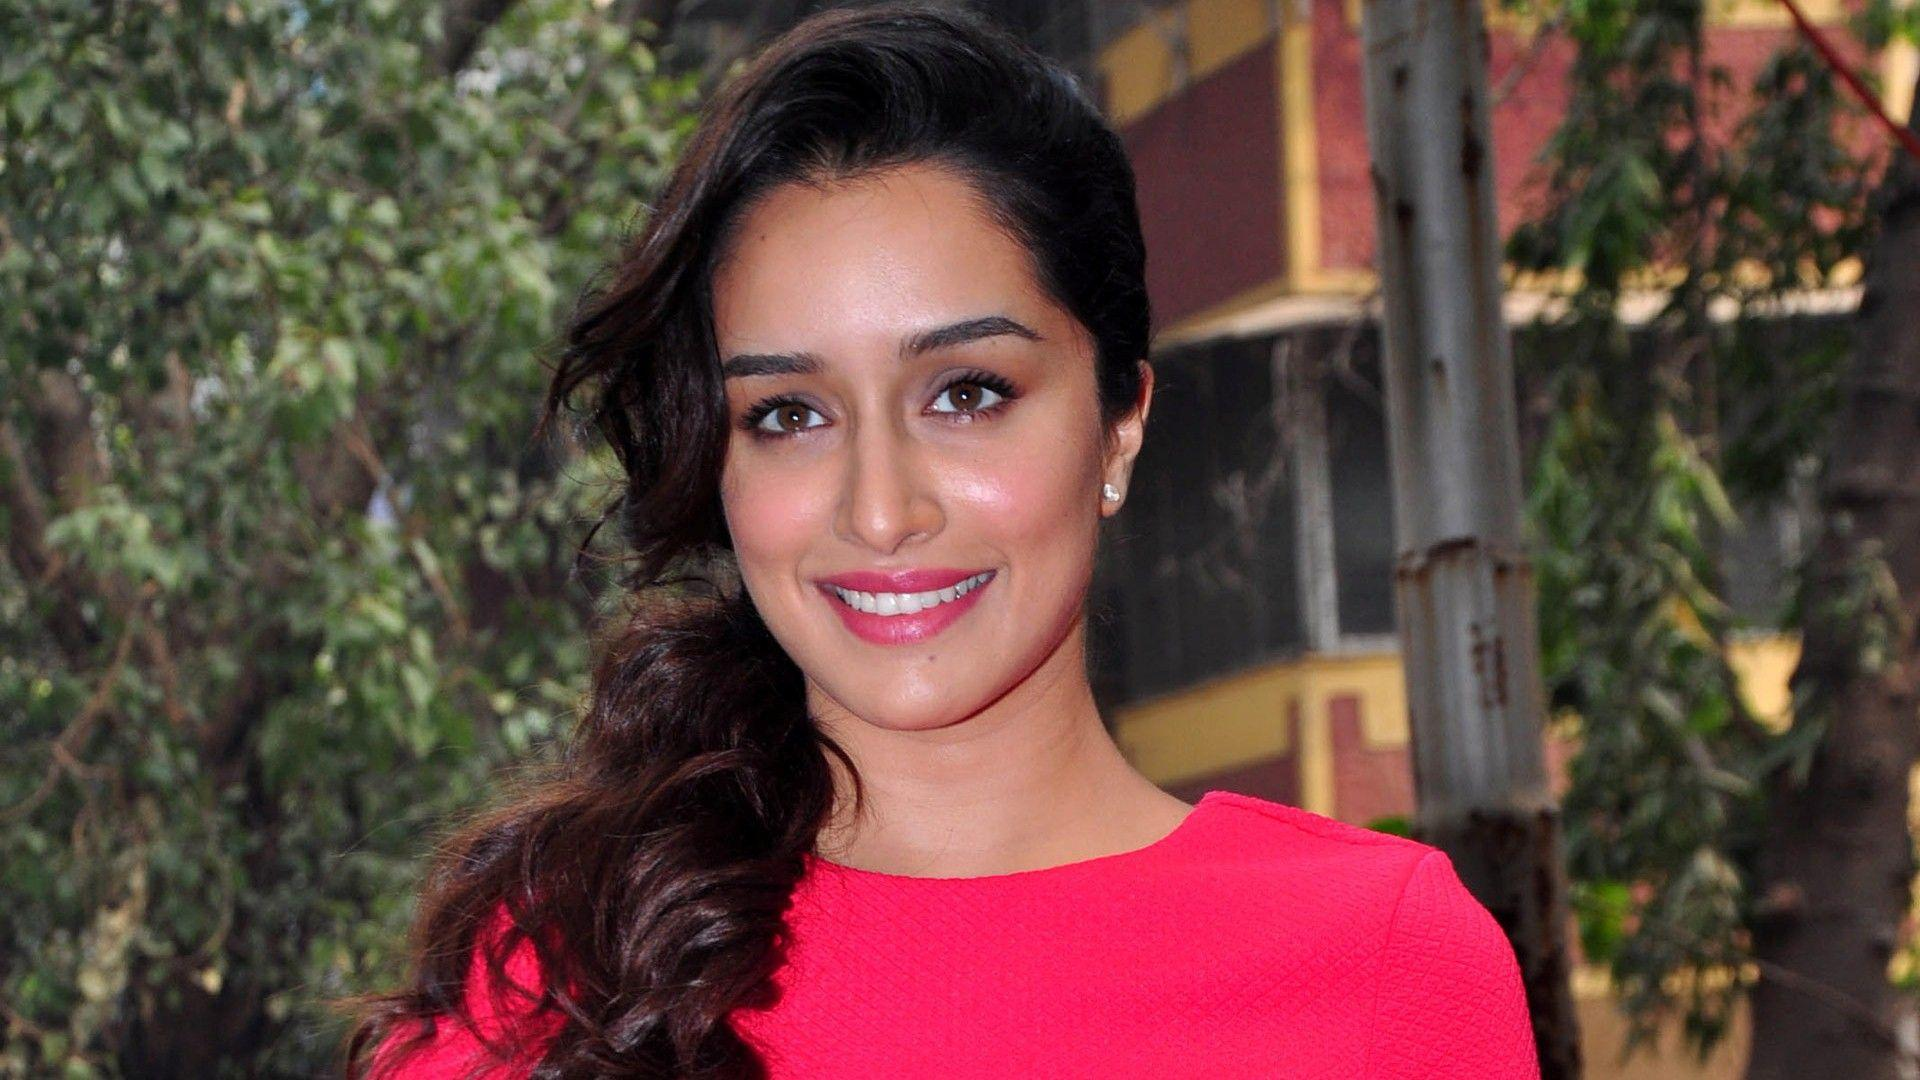 shraddha_kapoor_wallpaper_97338041